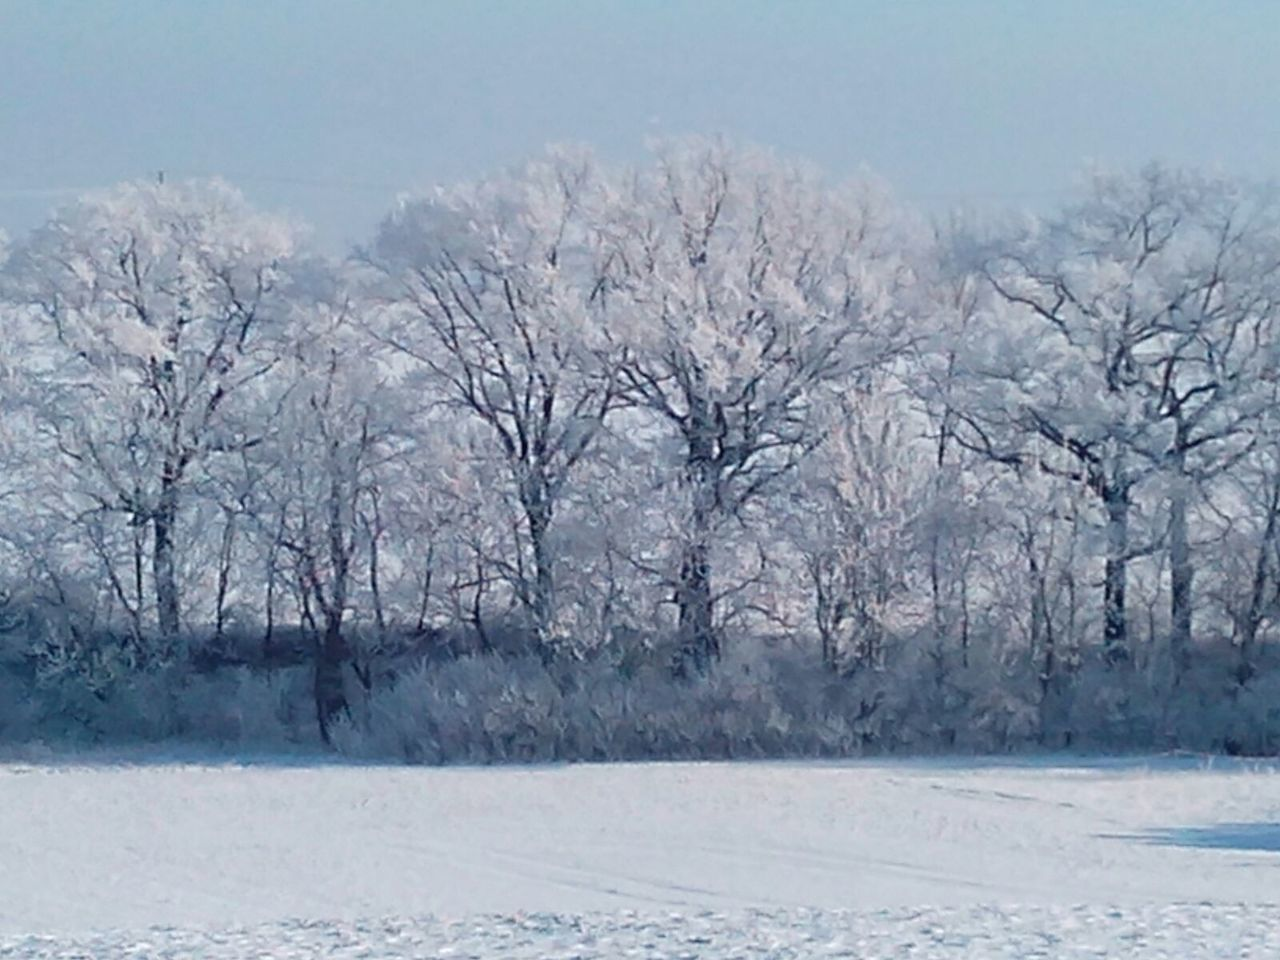 winter, cold temperature, snow, cold, nature, bare tree, beauty in nature, tree, tranquility, weather, landscape, no people, frozen, tranquil scene, day, outdoors, frost, scenics, branch, sky